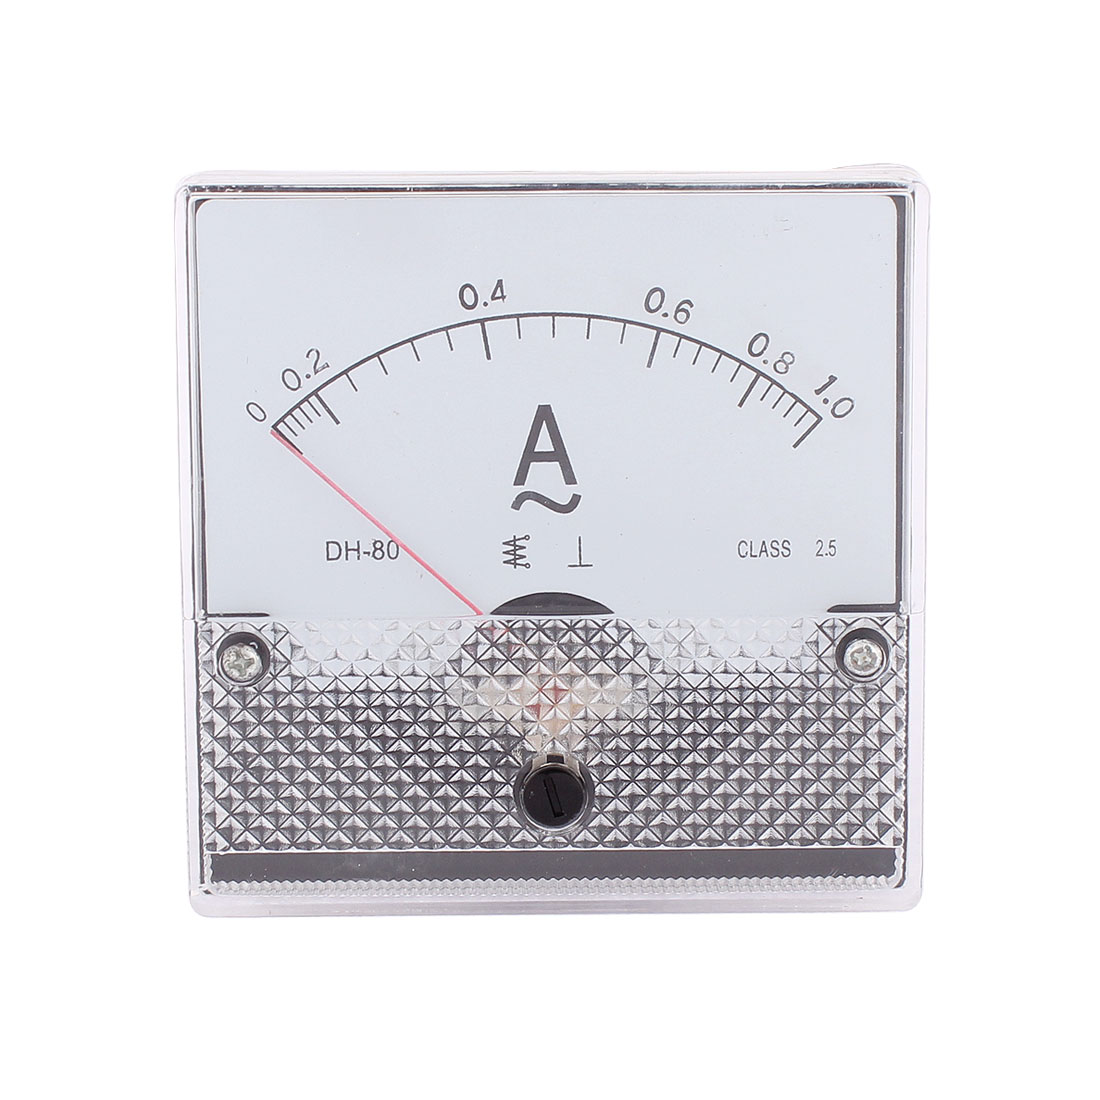 AC 0-1A Analog Panel Ammeter Meter Electric Current Measuring Gauge Class 2.5